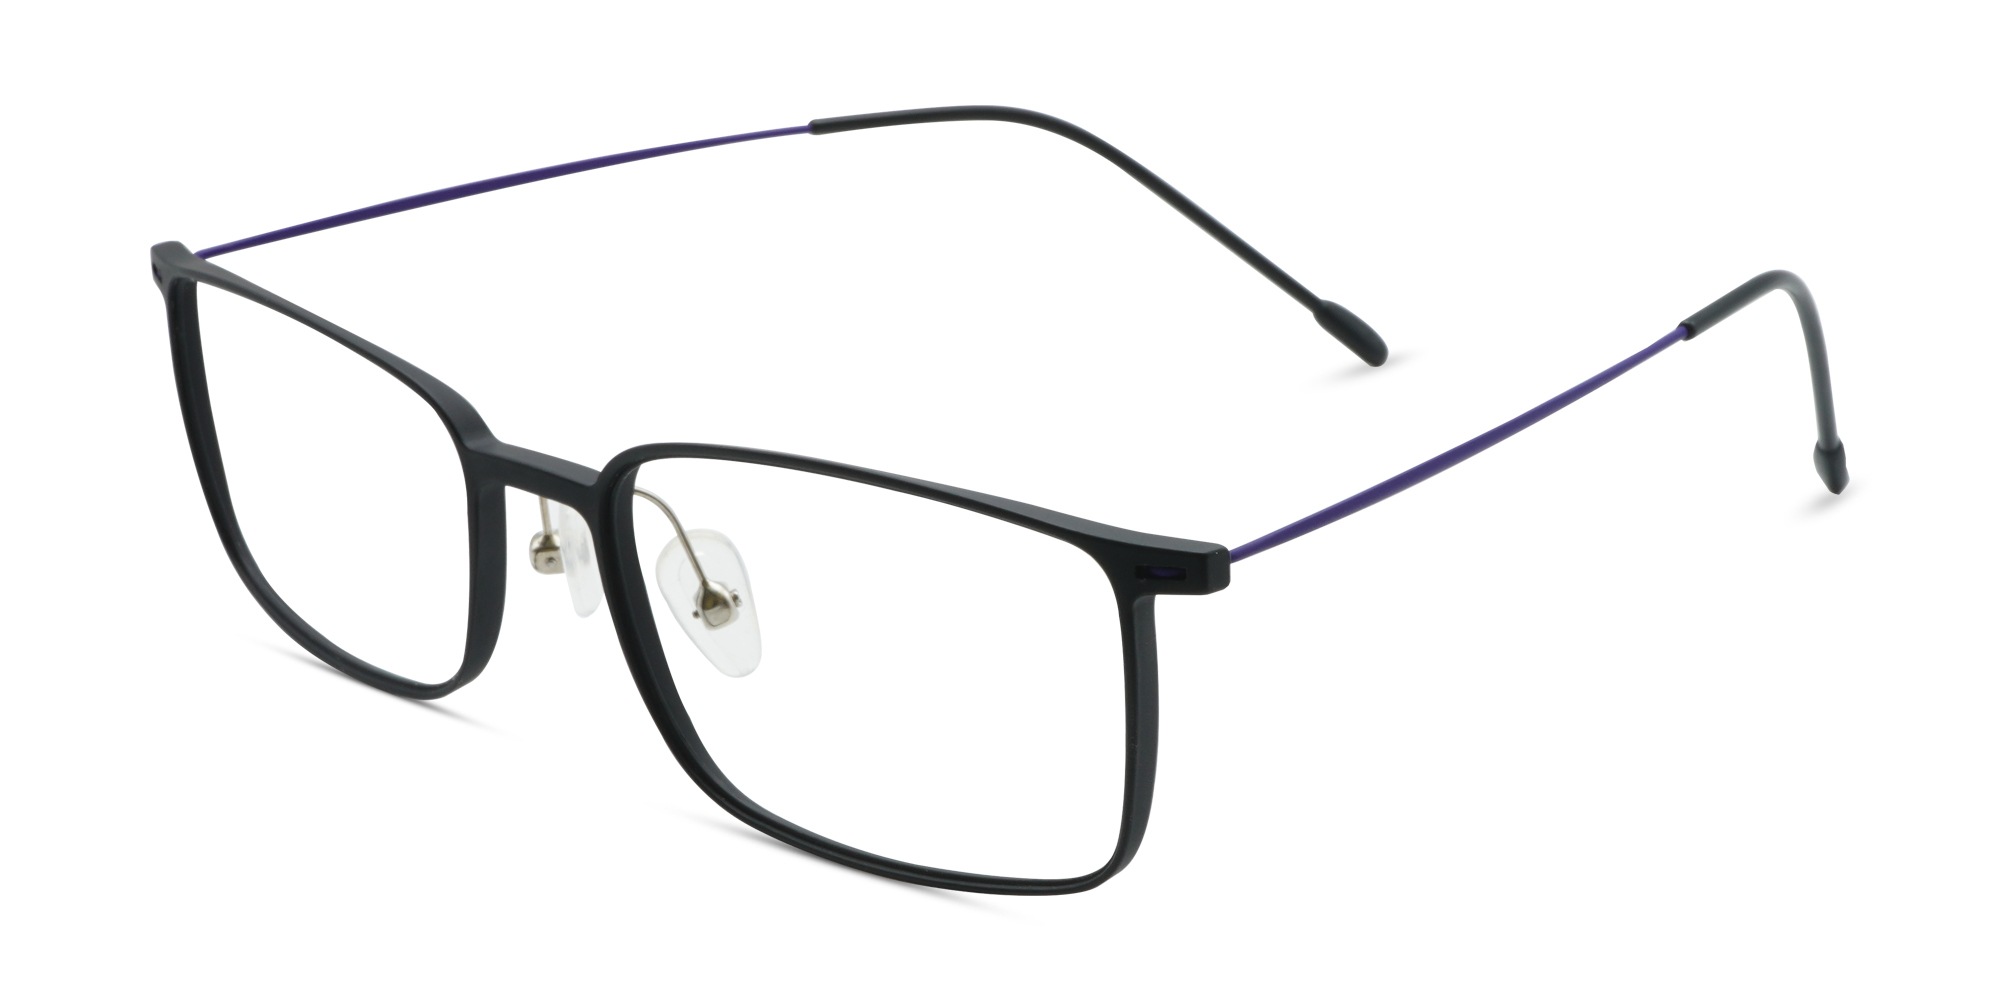 Ithaca Bendable Eyeglasses